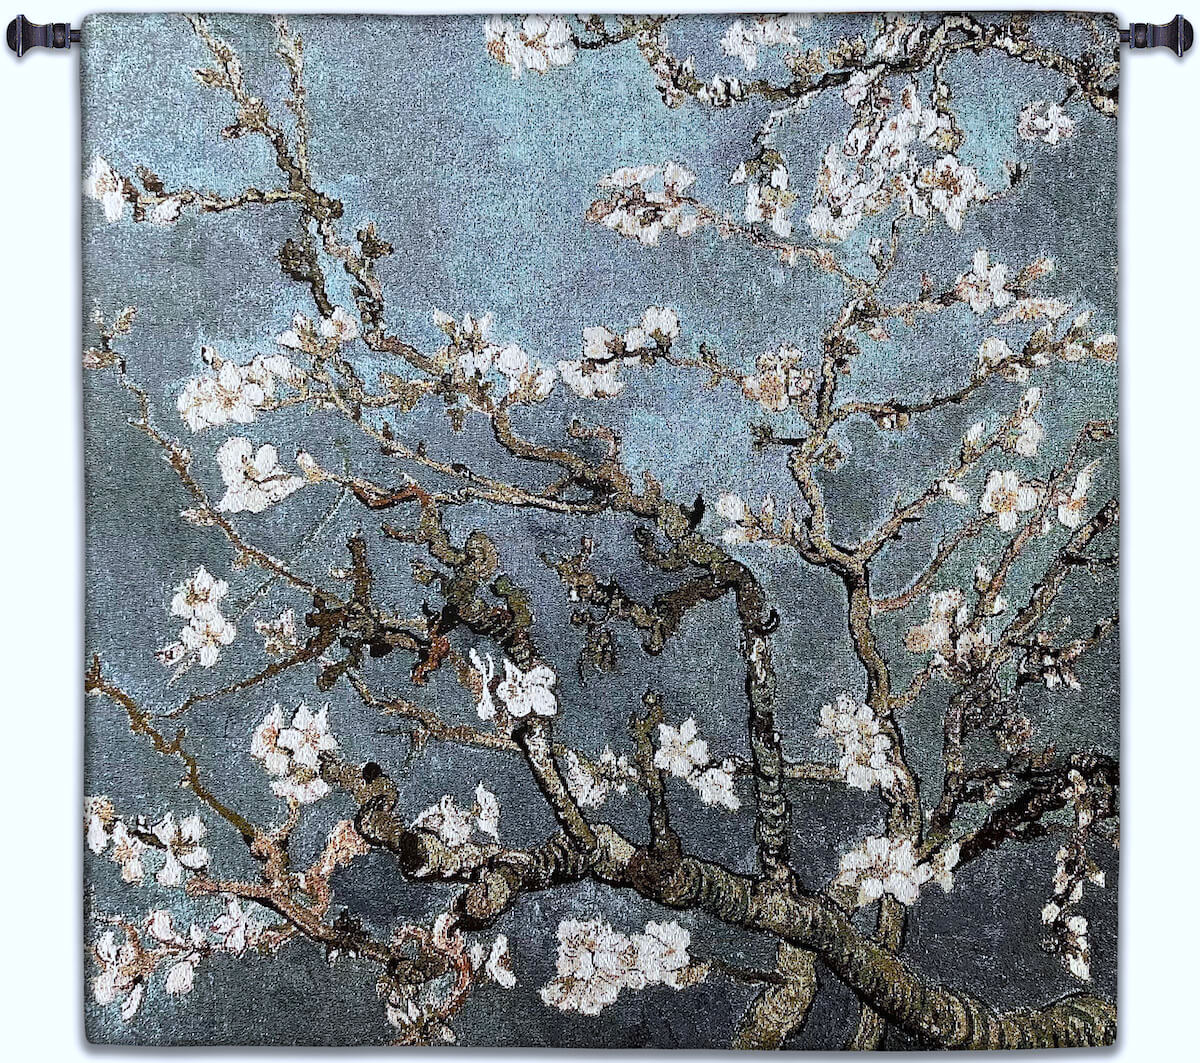 Almond Blossom Blue Square Wall Tapestry C-4572M, 4572-Wh, 4572C, 4572Cm, 4572Wh, 4590-Wh, 4590C, 4590Wh, 52H, 52W, Abstract, Almond, Art, S, Blossom, Blue, Botanical, Carolina, USAwoven, Cotton, Floral, Flower, Flowers, Gogh, Gray, Grey, Hanging, Oriental, Pedals, Purple, Seller, Square, Tapestries, Tapestry, Top50, Tree, Van, Wall, White, Woven, Woven, Bestseller, tapestries, tapestrys, hangings, and, the, exclusive